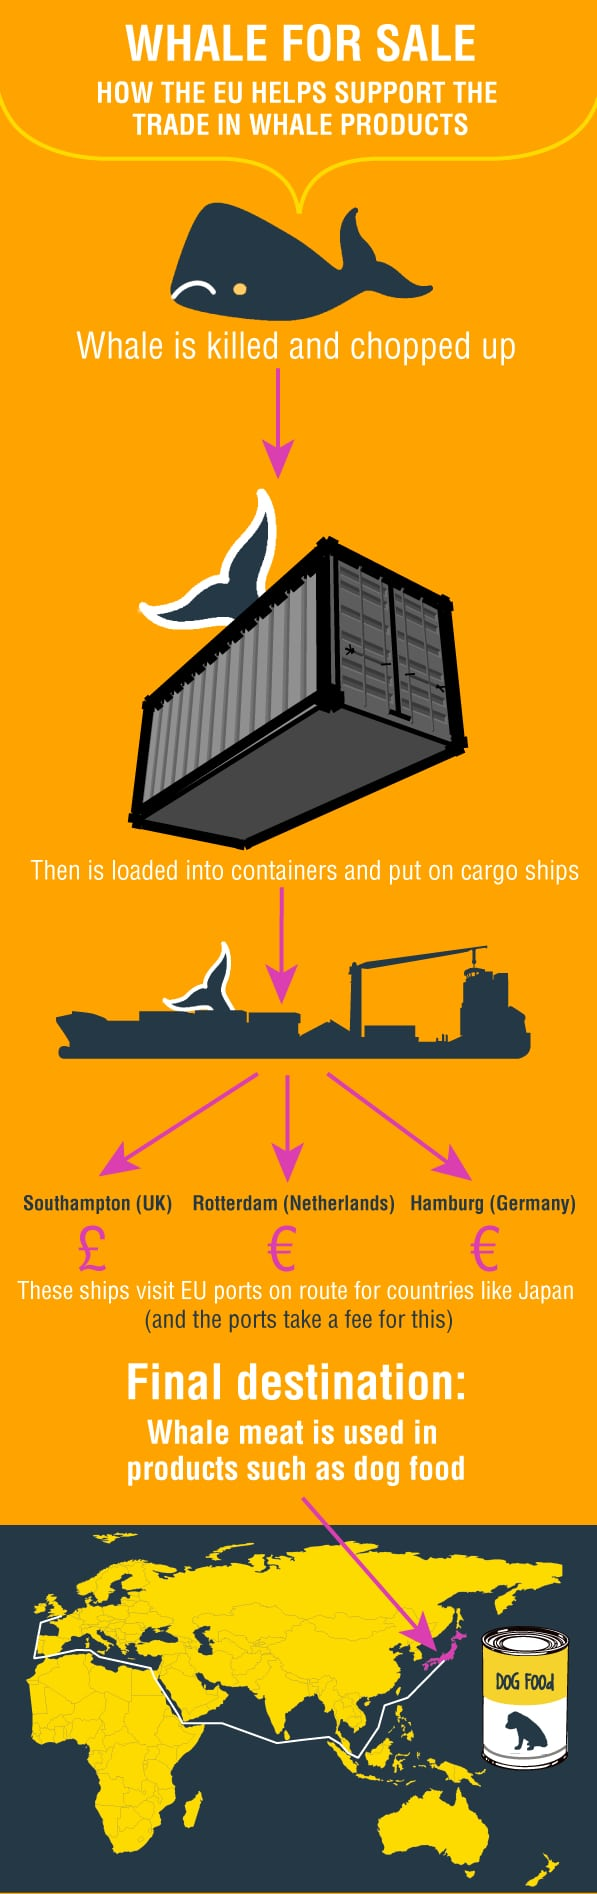 whaling-trade-infographic